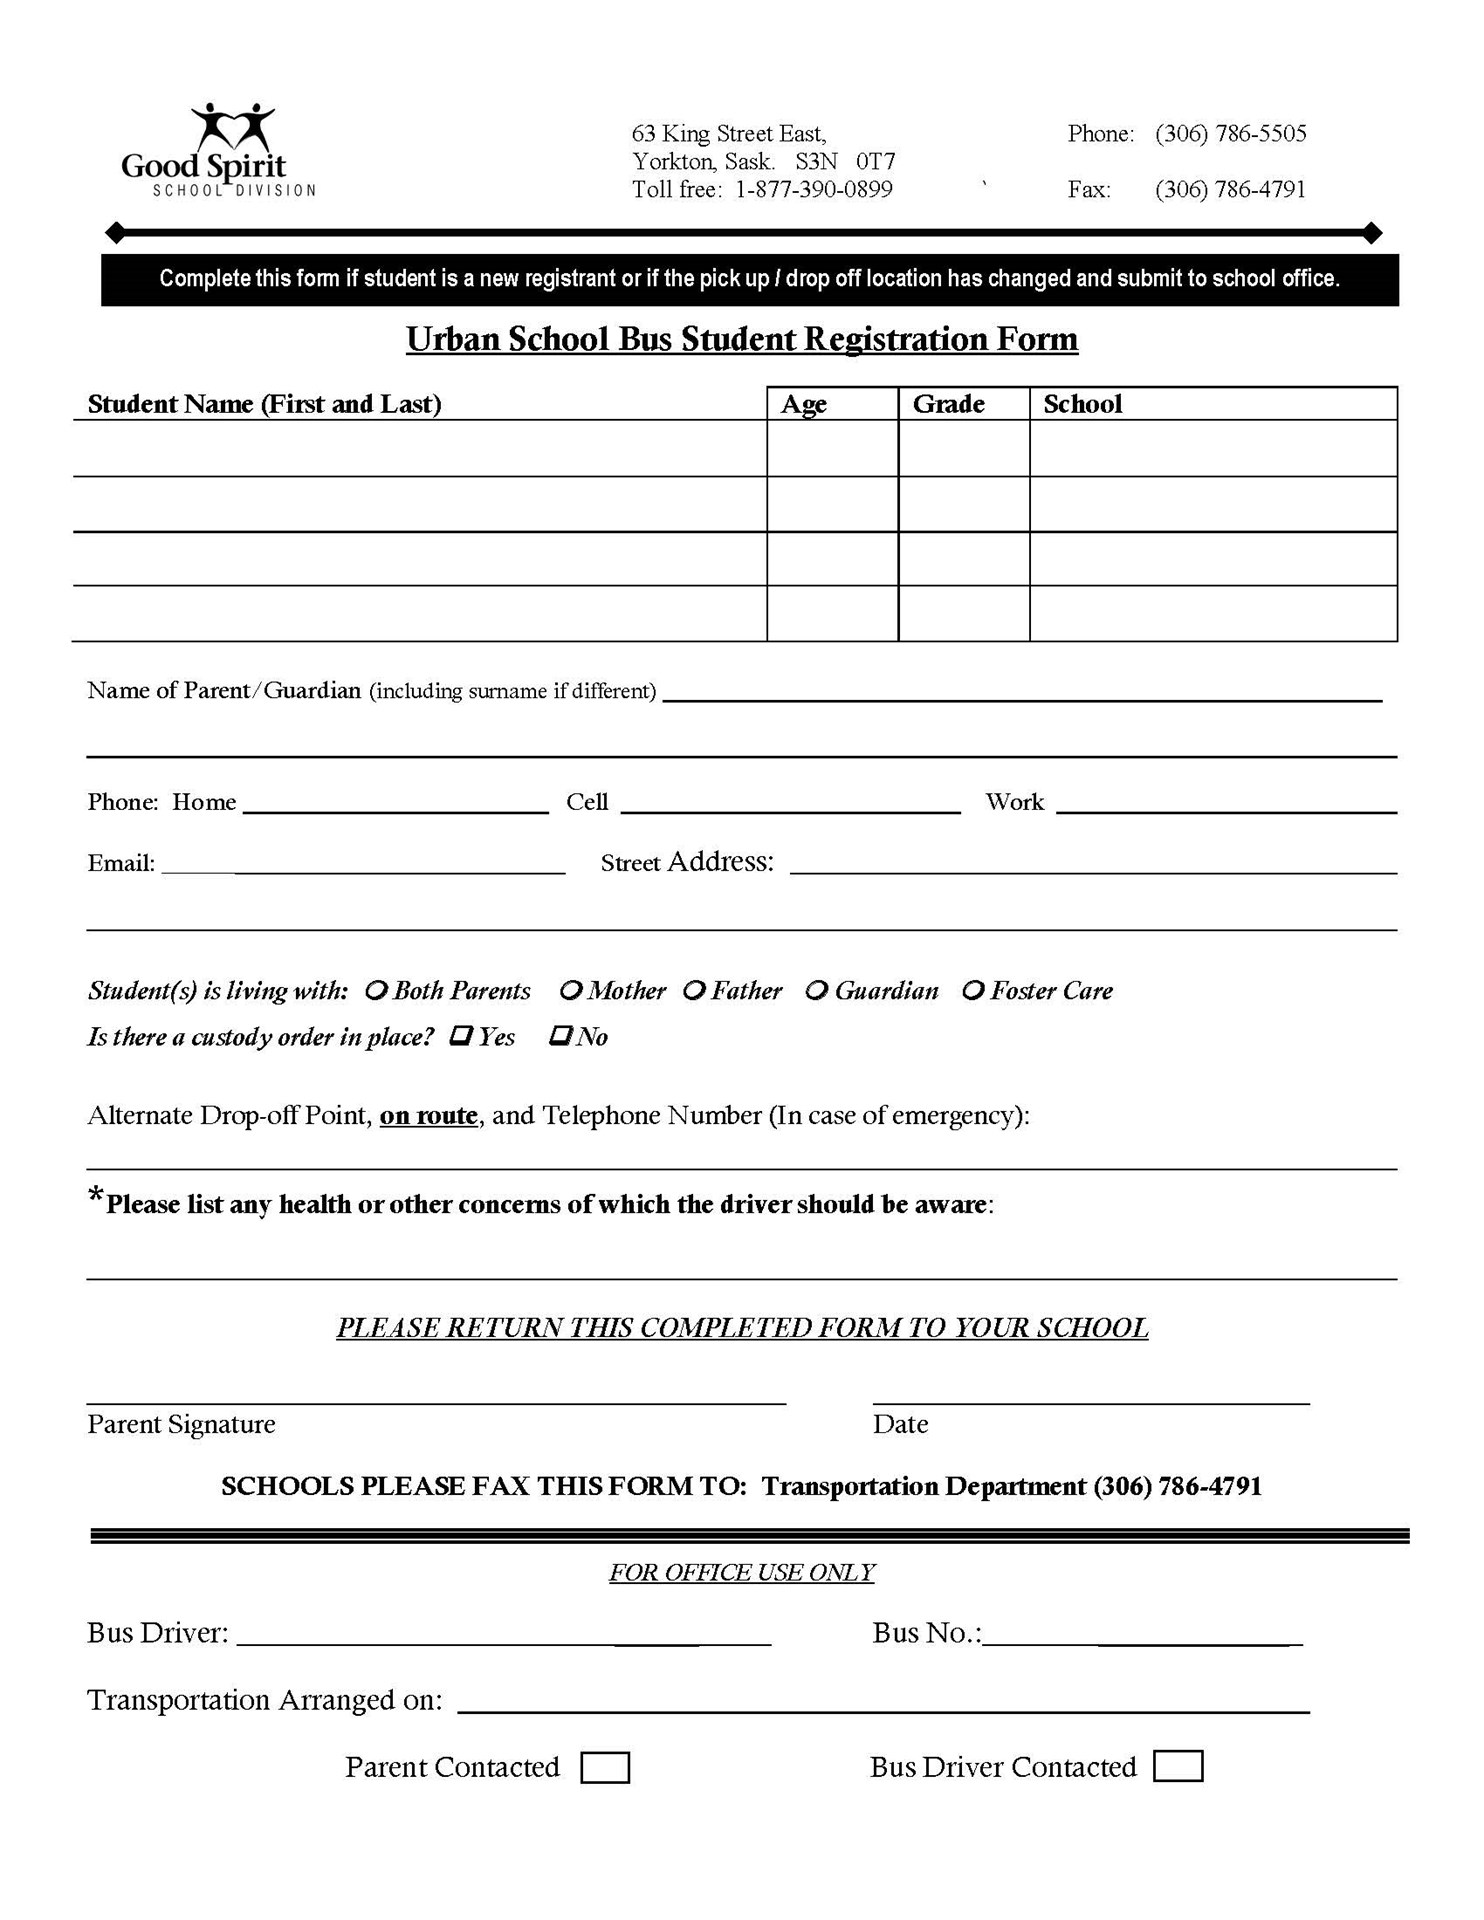 Urban Bus Registration Form